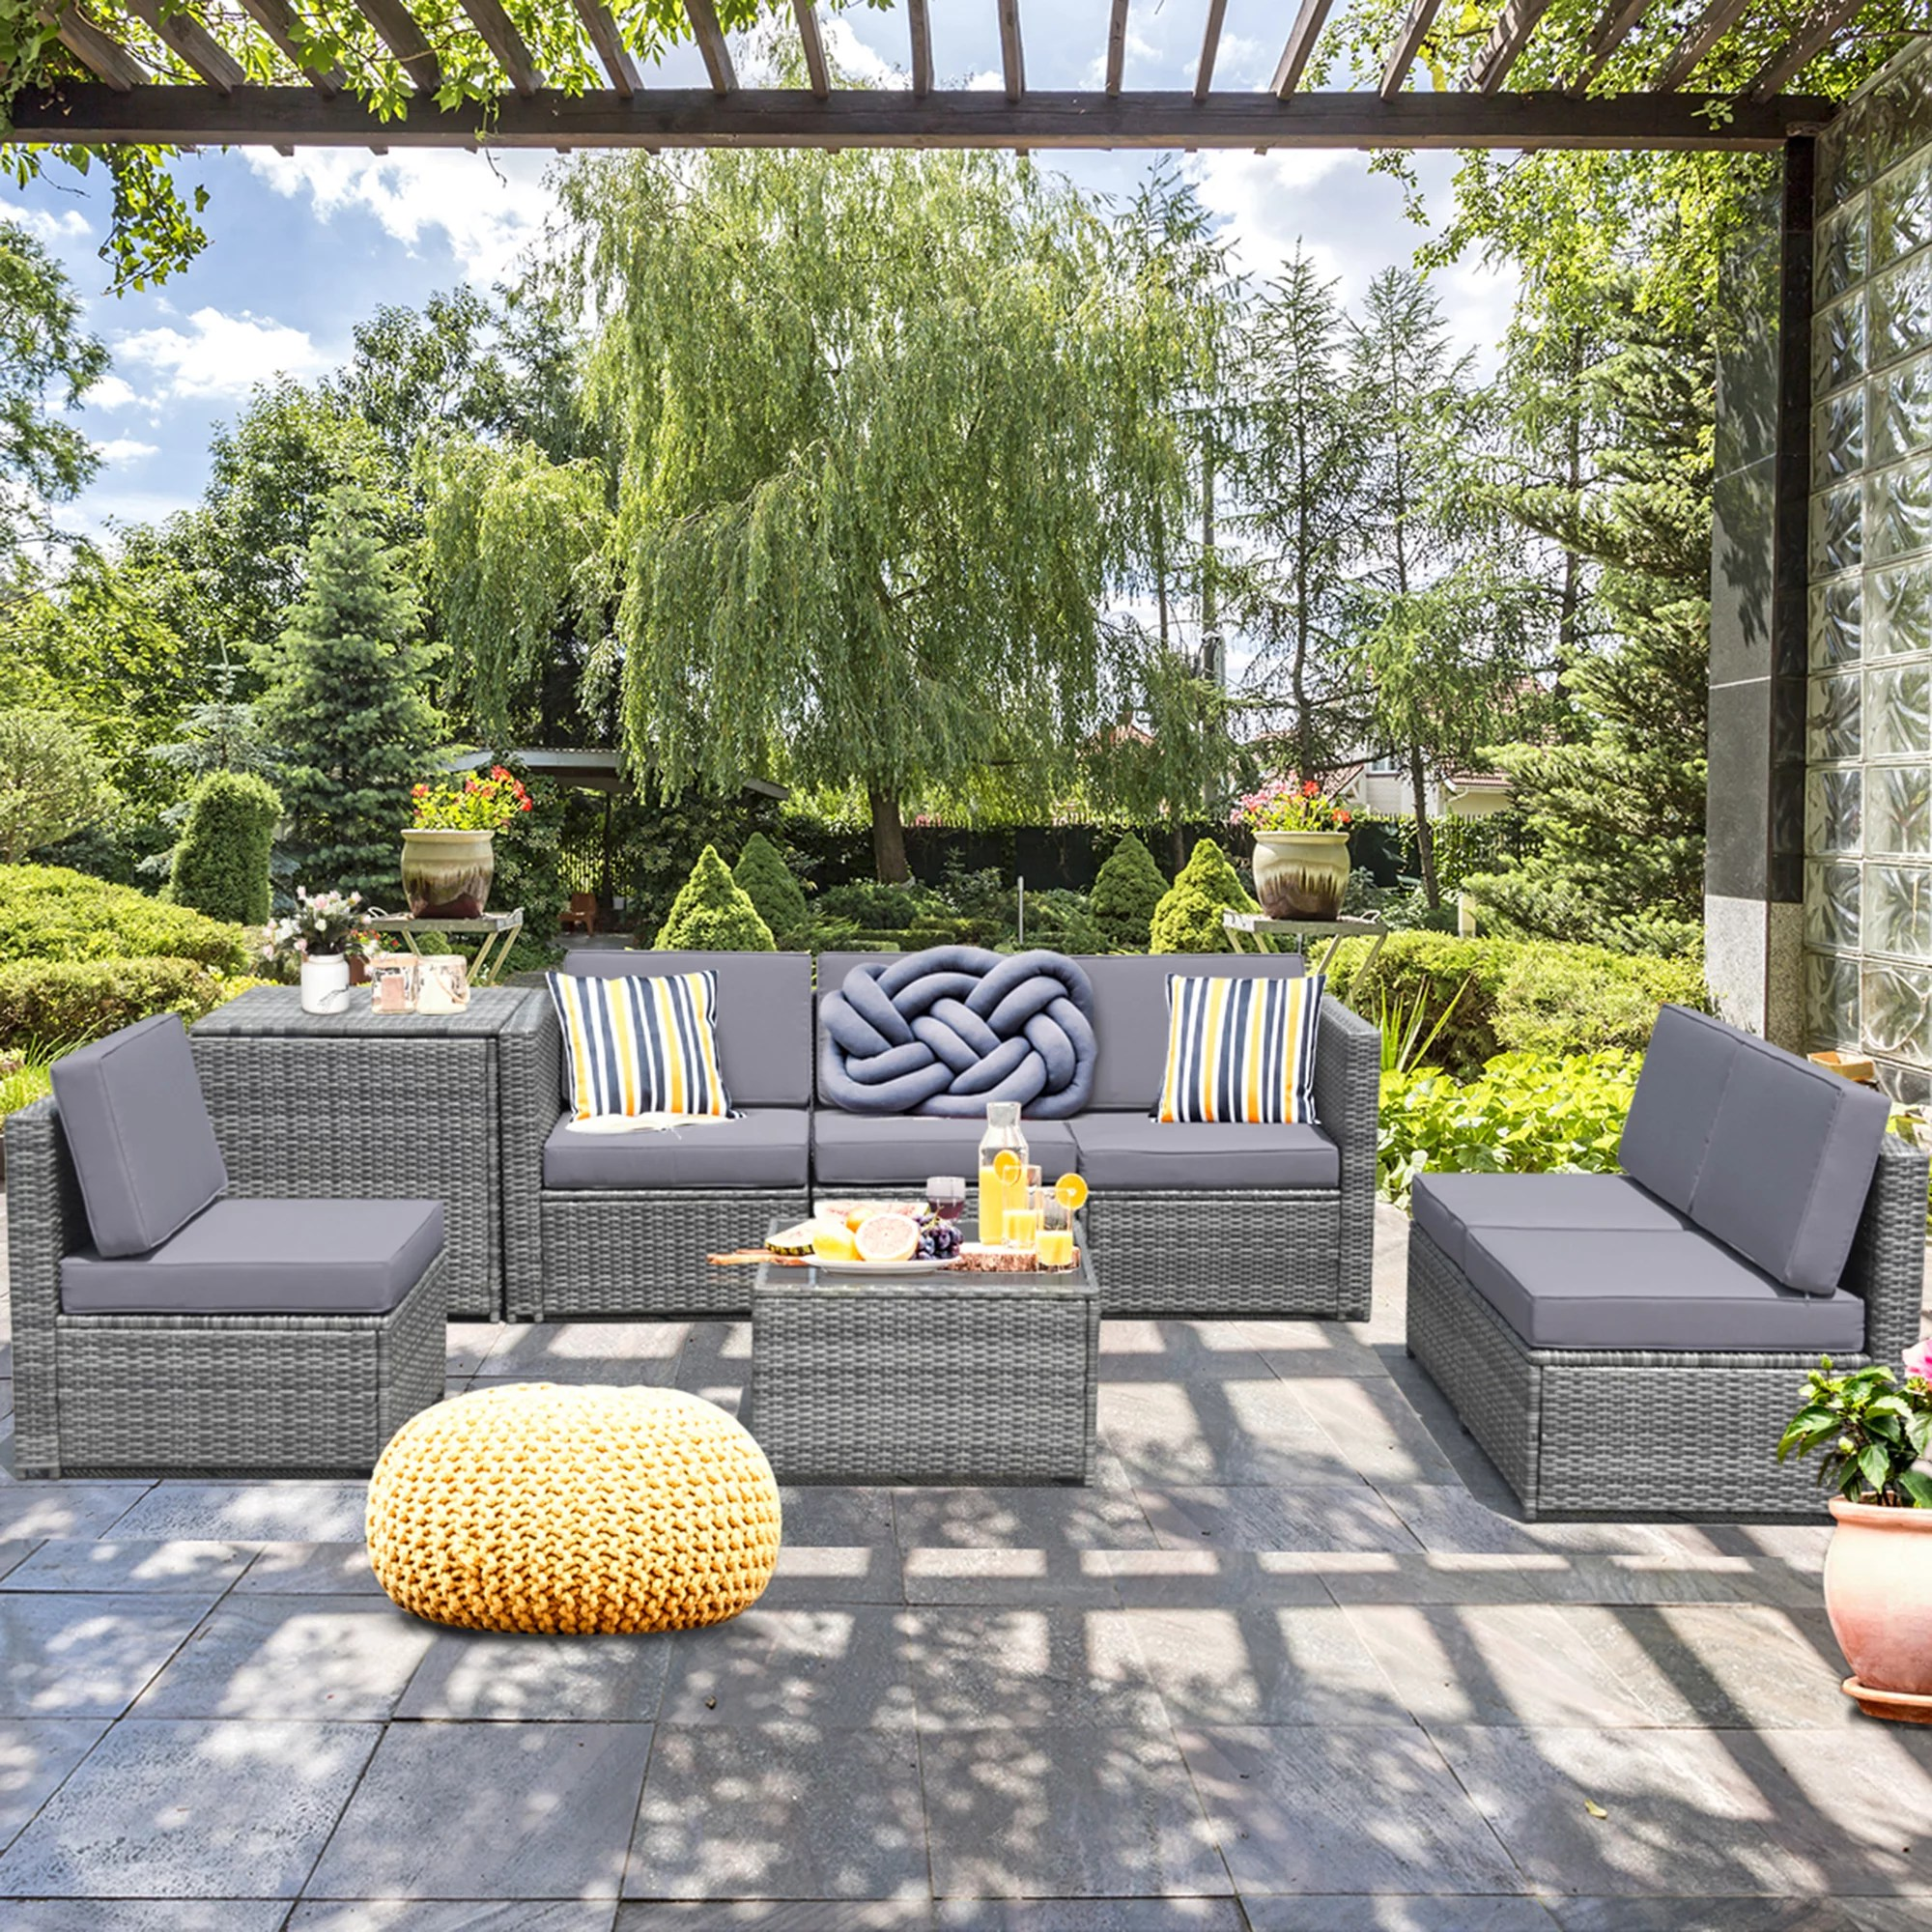 gymax set of 8 gray rattan wicker sofa table outdoor cushioned sectional patio furniture walmart com